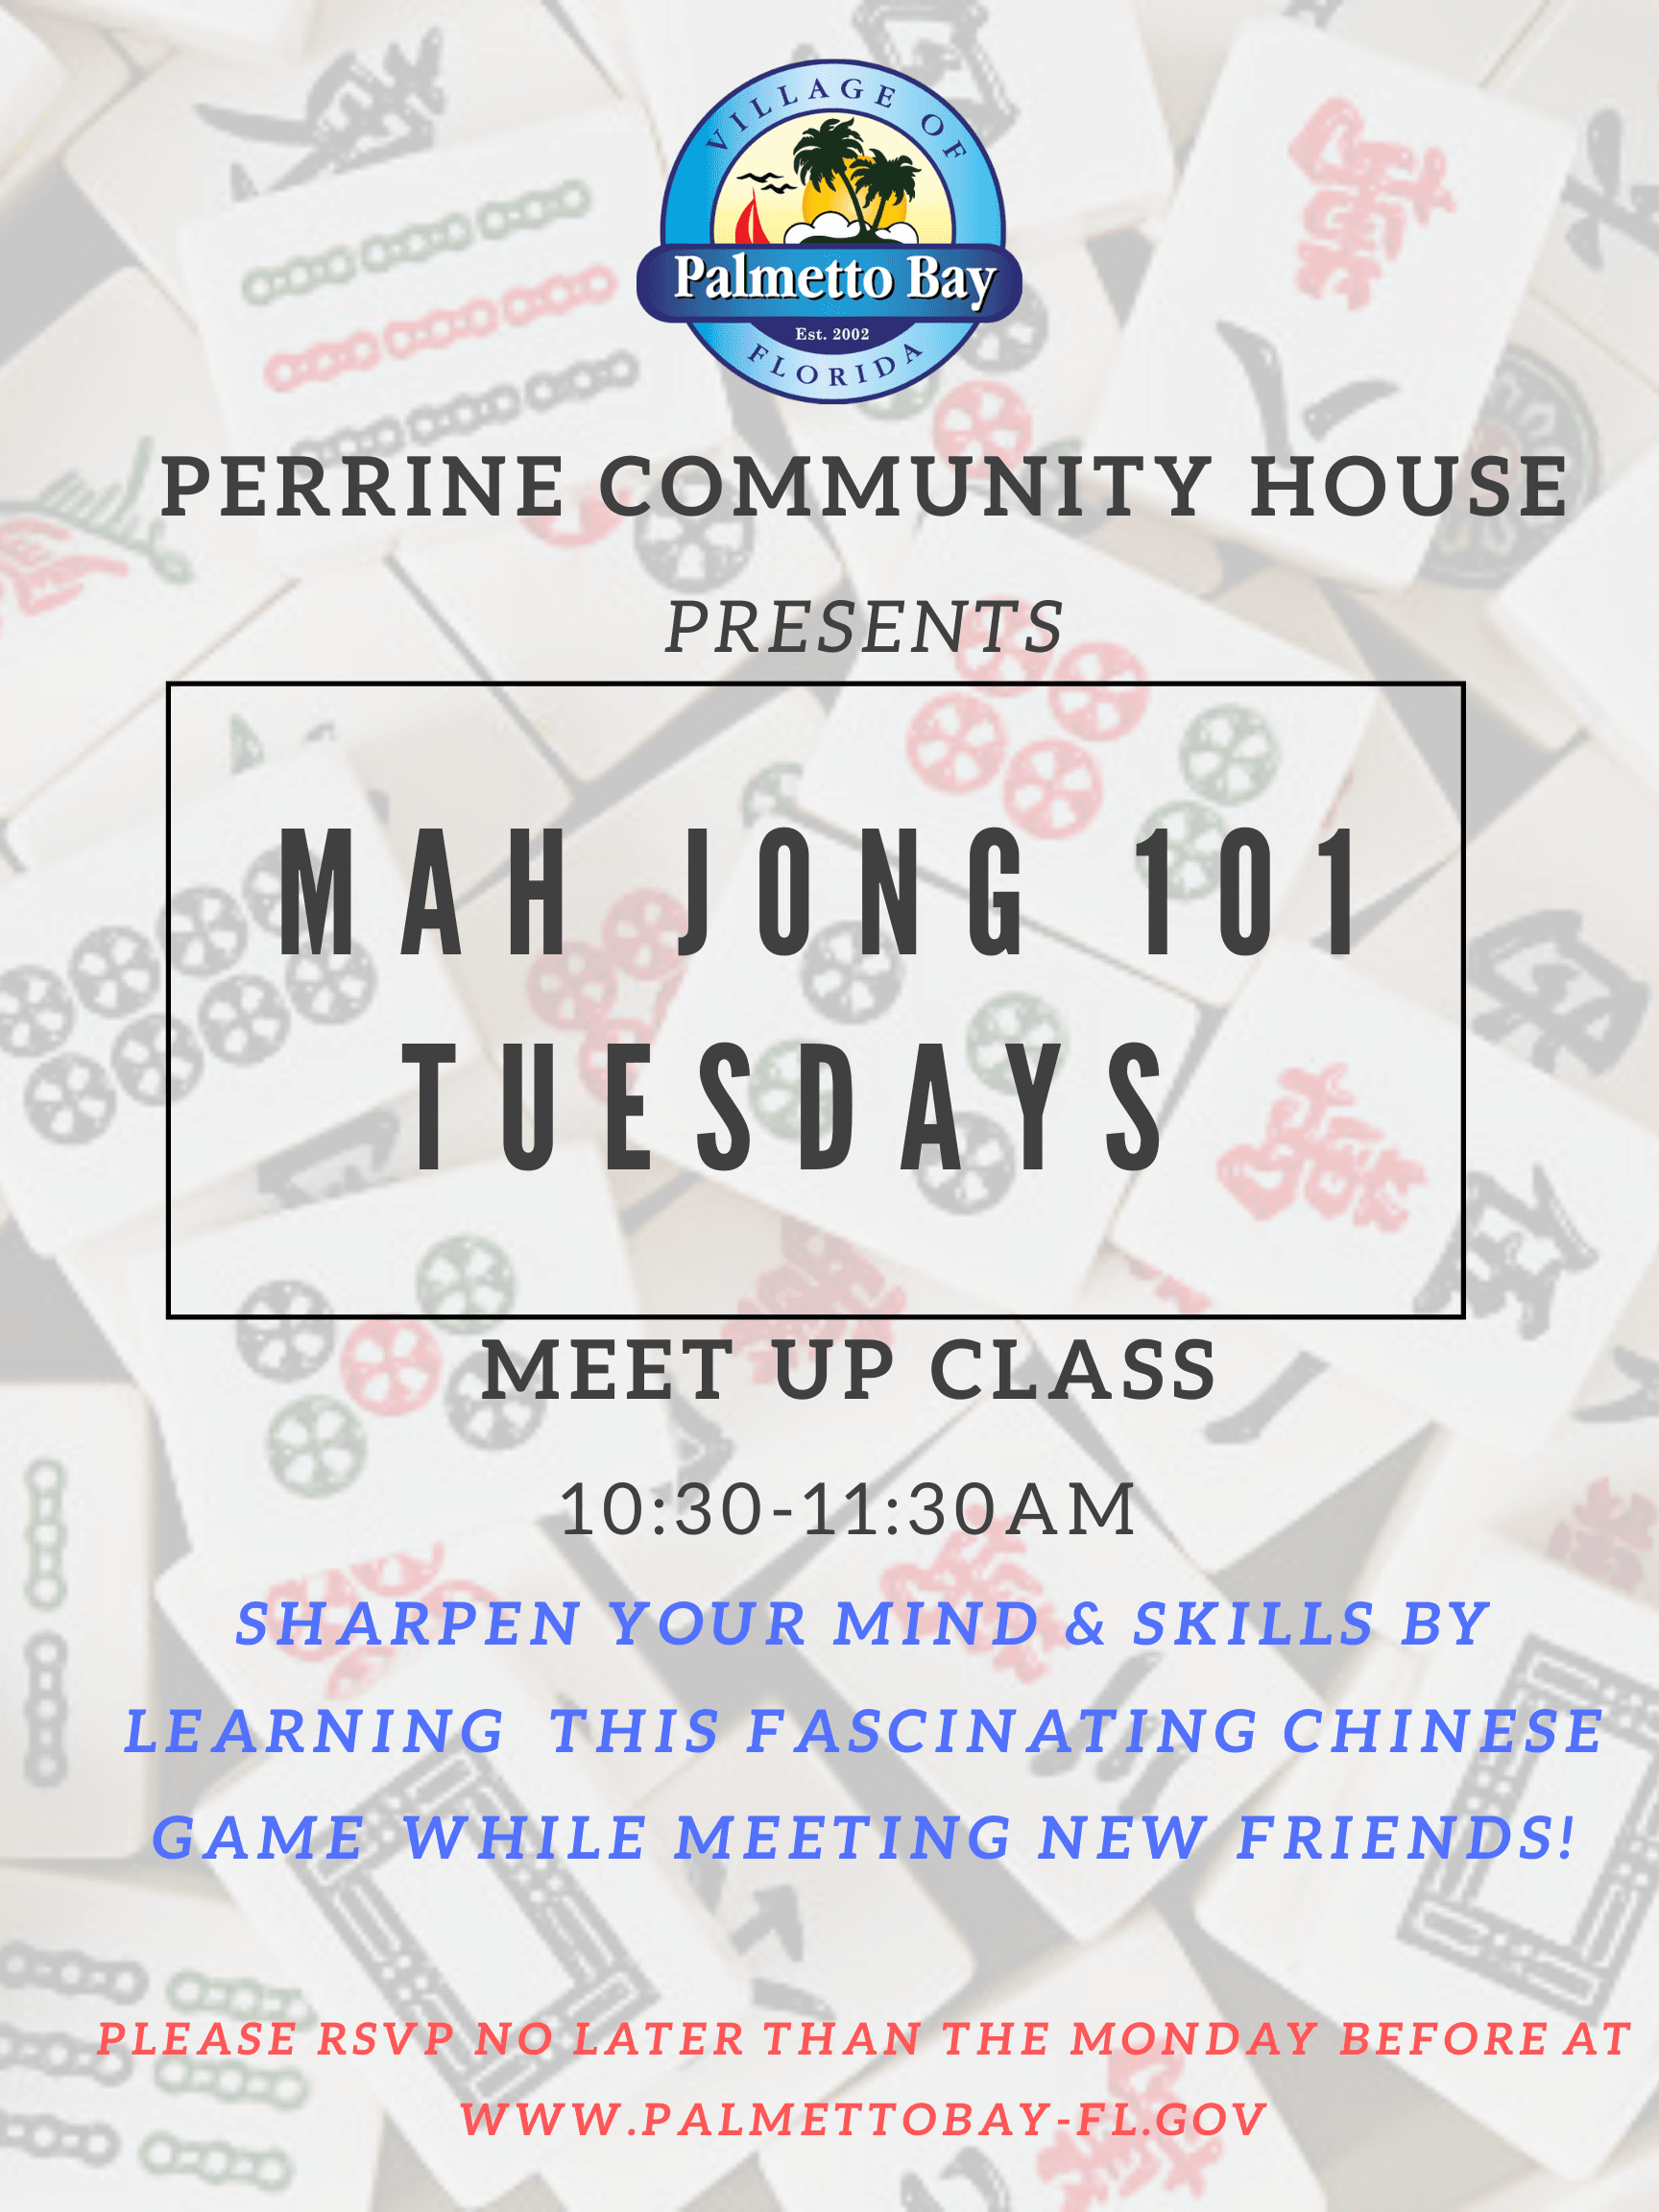 Mah Jong Meet Up Class on Tuesdays January-March 2020 at PCH from 10:30-11:30a